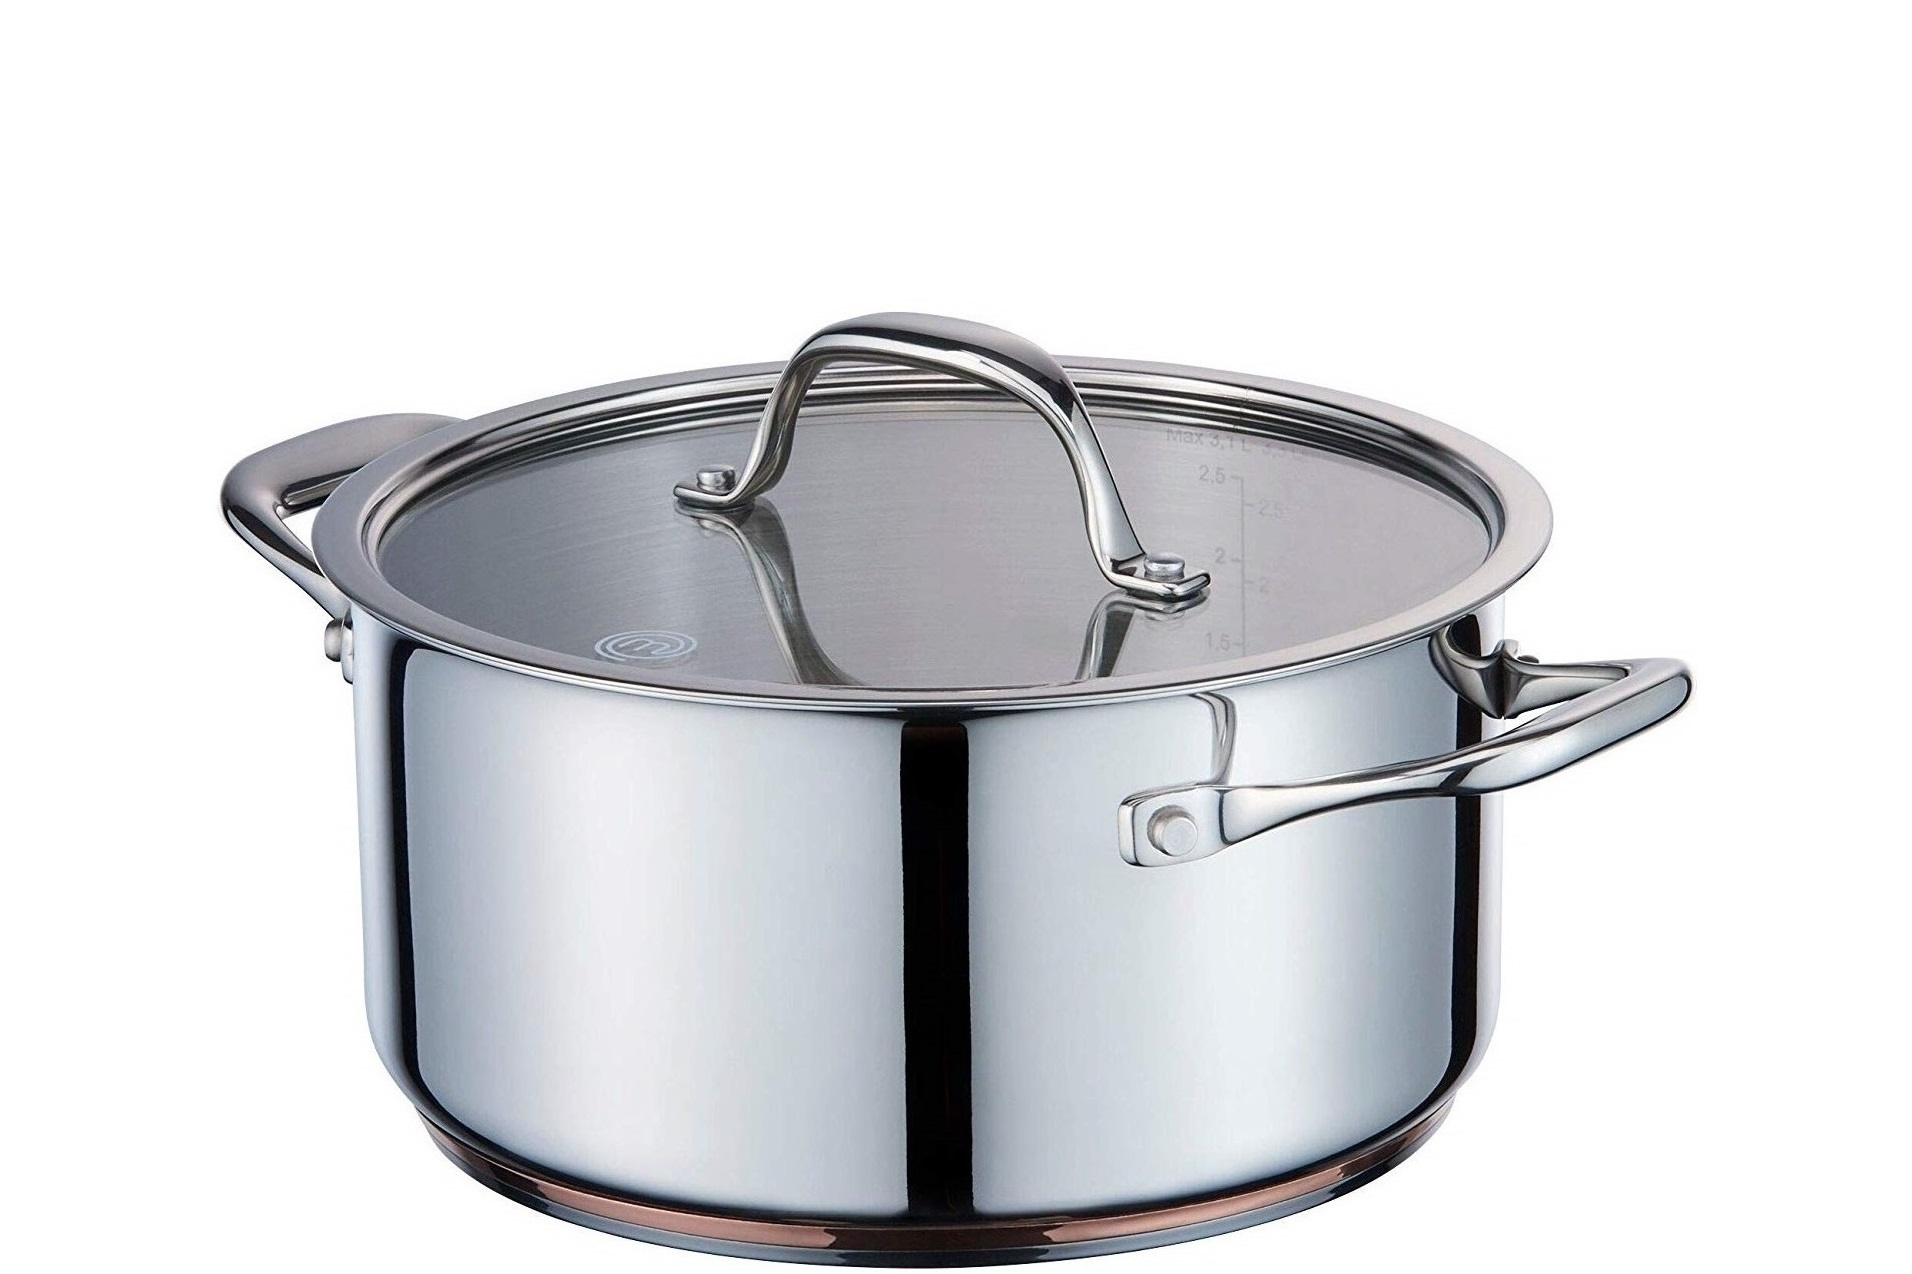 MasterChef Kookpan Copperline Cookware 1.4 Liter